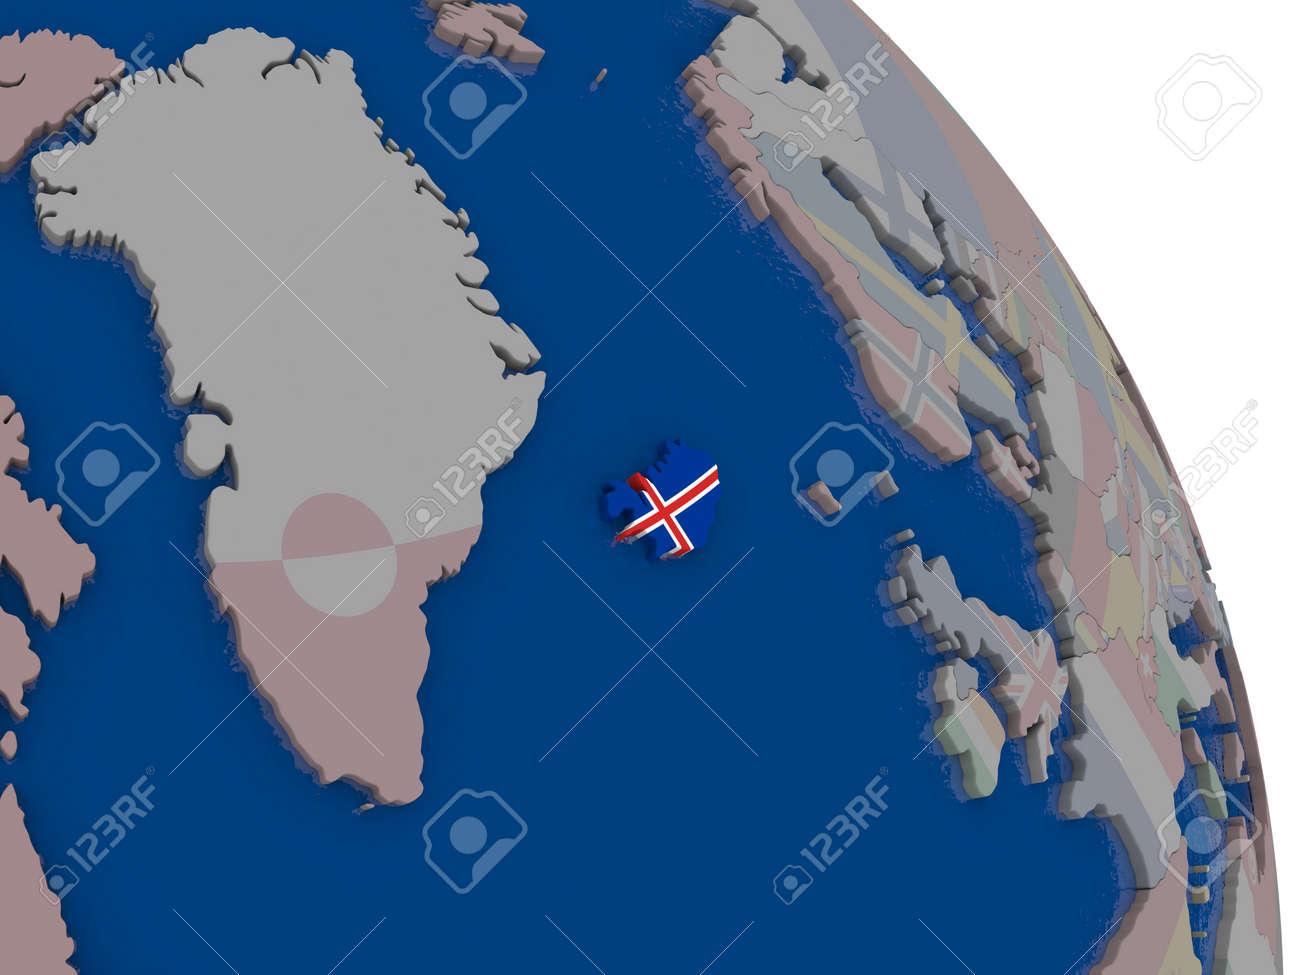 Iceland with embedded national flag on globe highly detailed iceland with embedded national flag on globe highly detailed 3d illustration with accurate flag colors gumiabroncs